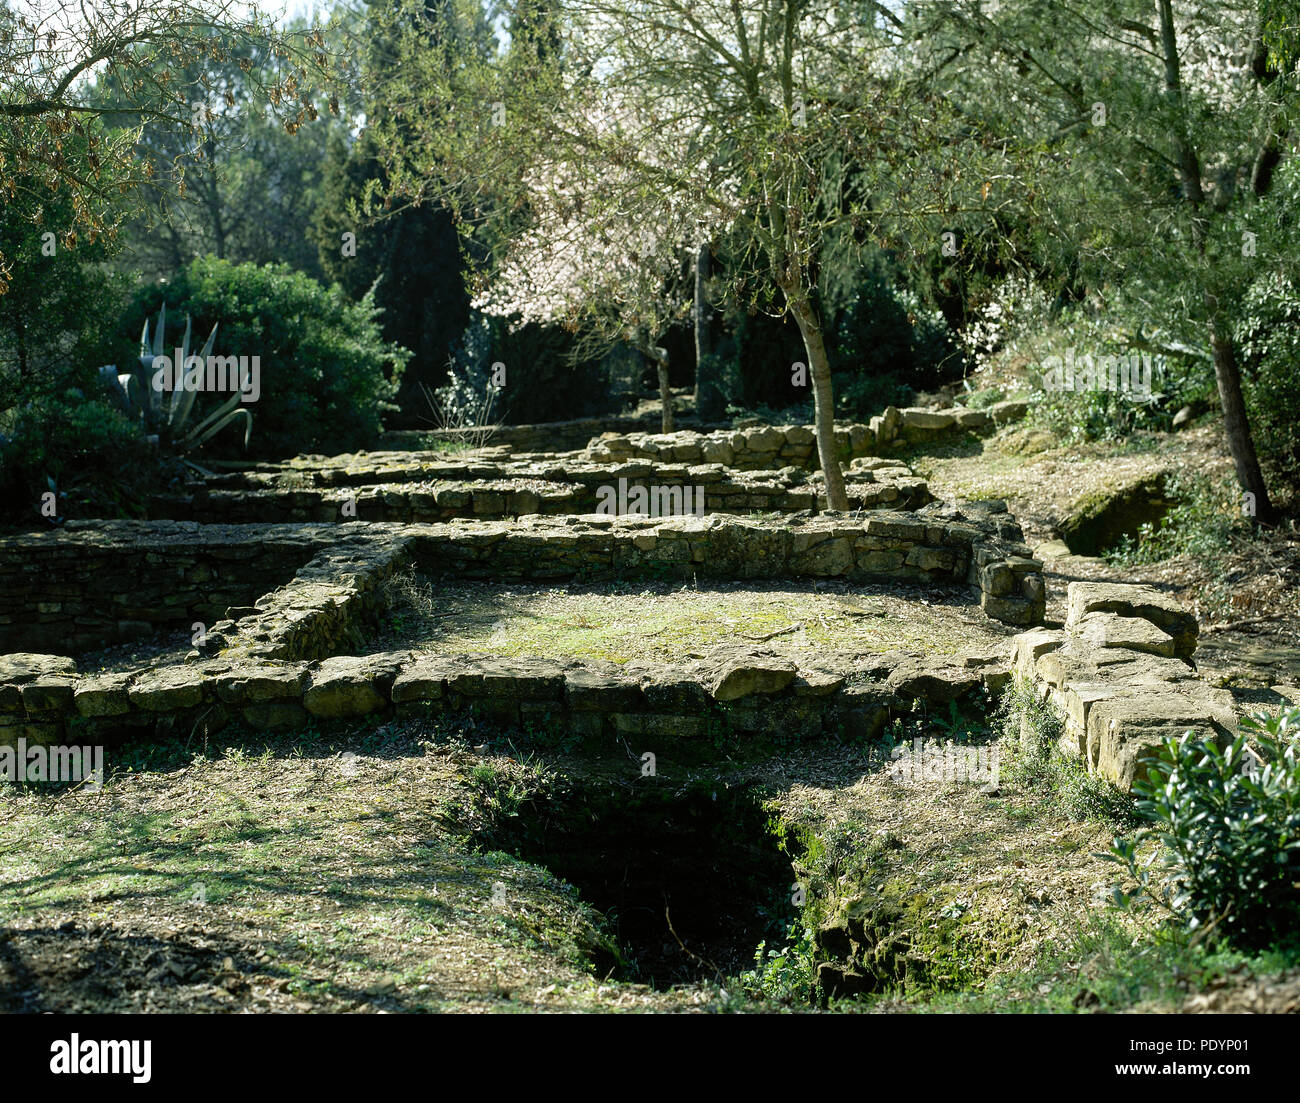 Iberian settlement of El Puig de Sant Andreu. 6th century-2nd century BC. Acropolis. Ruins of a temple, 4th century BC. Ullastret, Girona province, Catalonia, Spain. - Stock Image